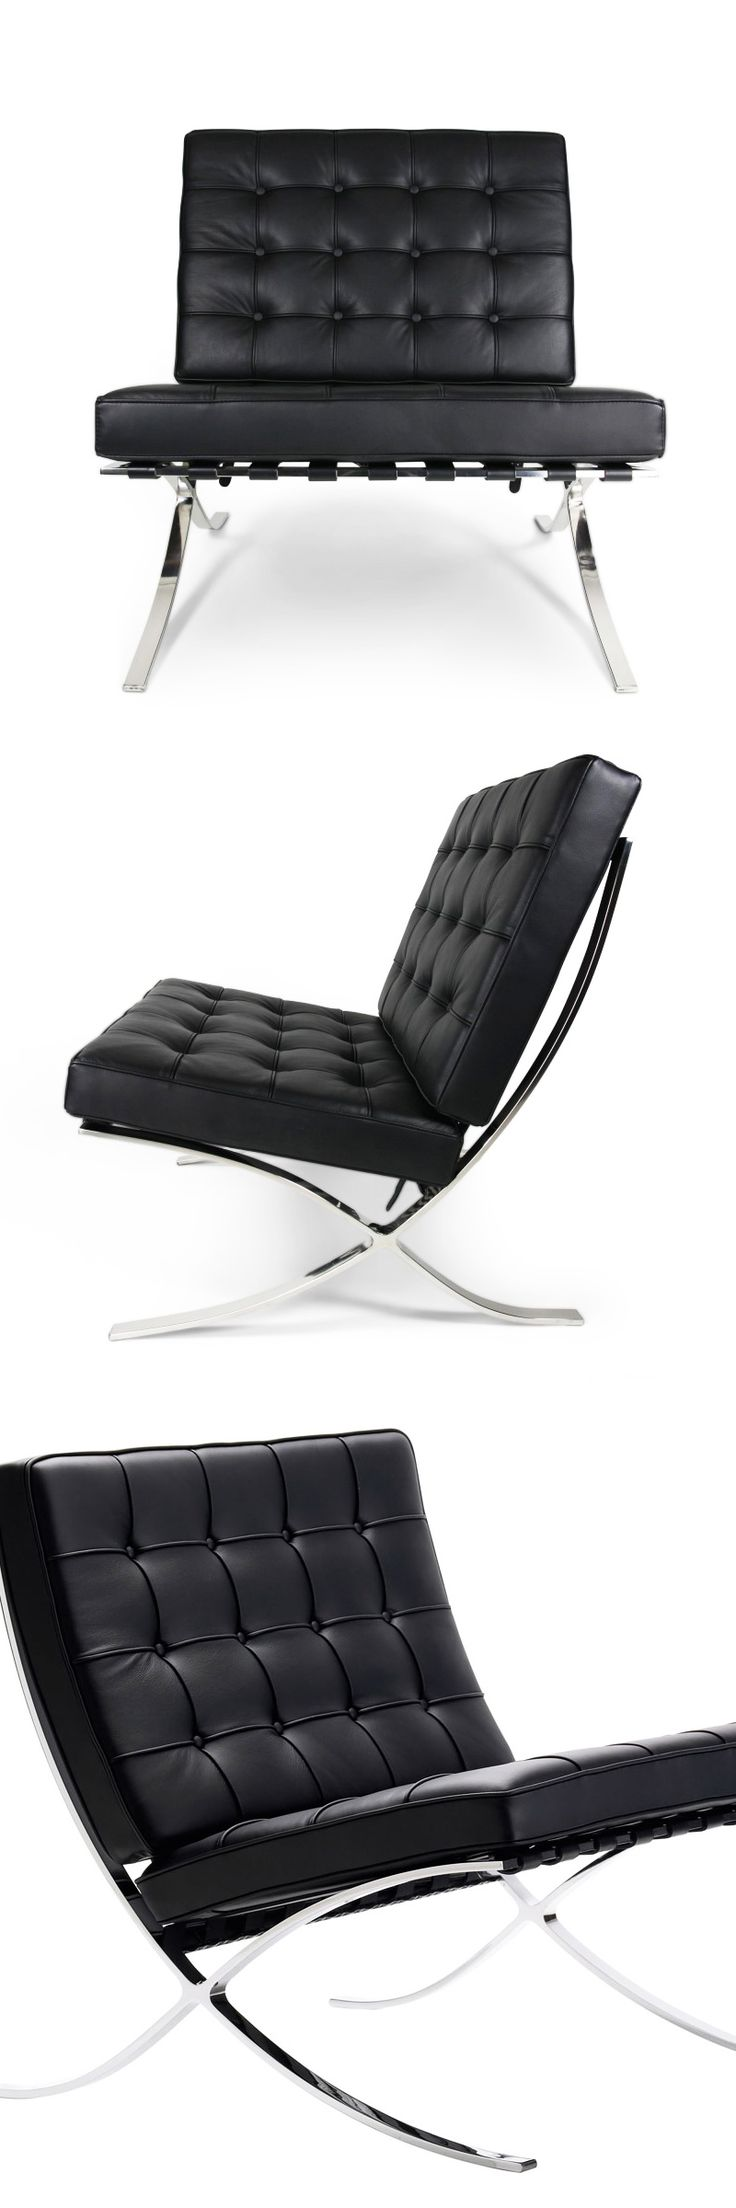 Nothing says Bauhaus more than this luxurious leather chair. Upholstered with 100% full-grain aniline leather from Italy and perched atop stainless steel legs, this chair is the ultimate in elegant style.